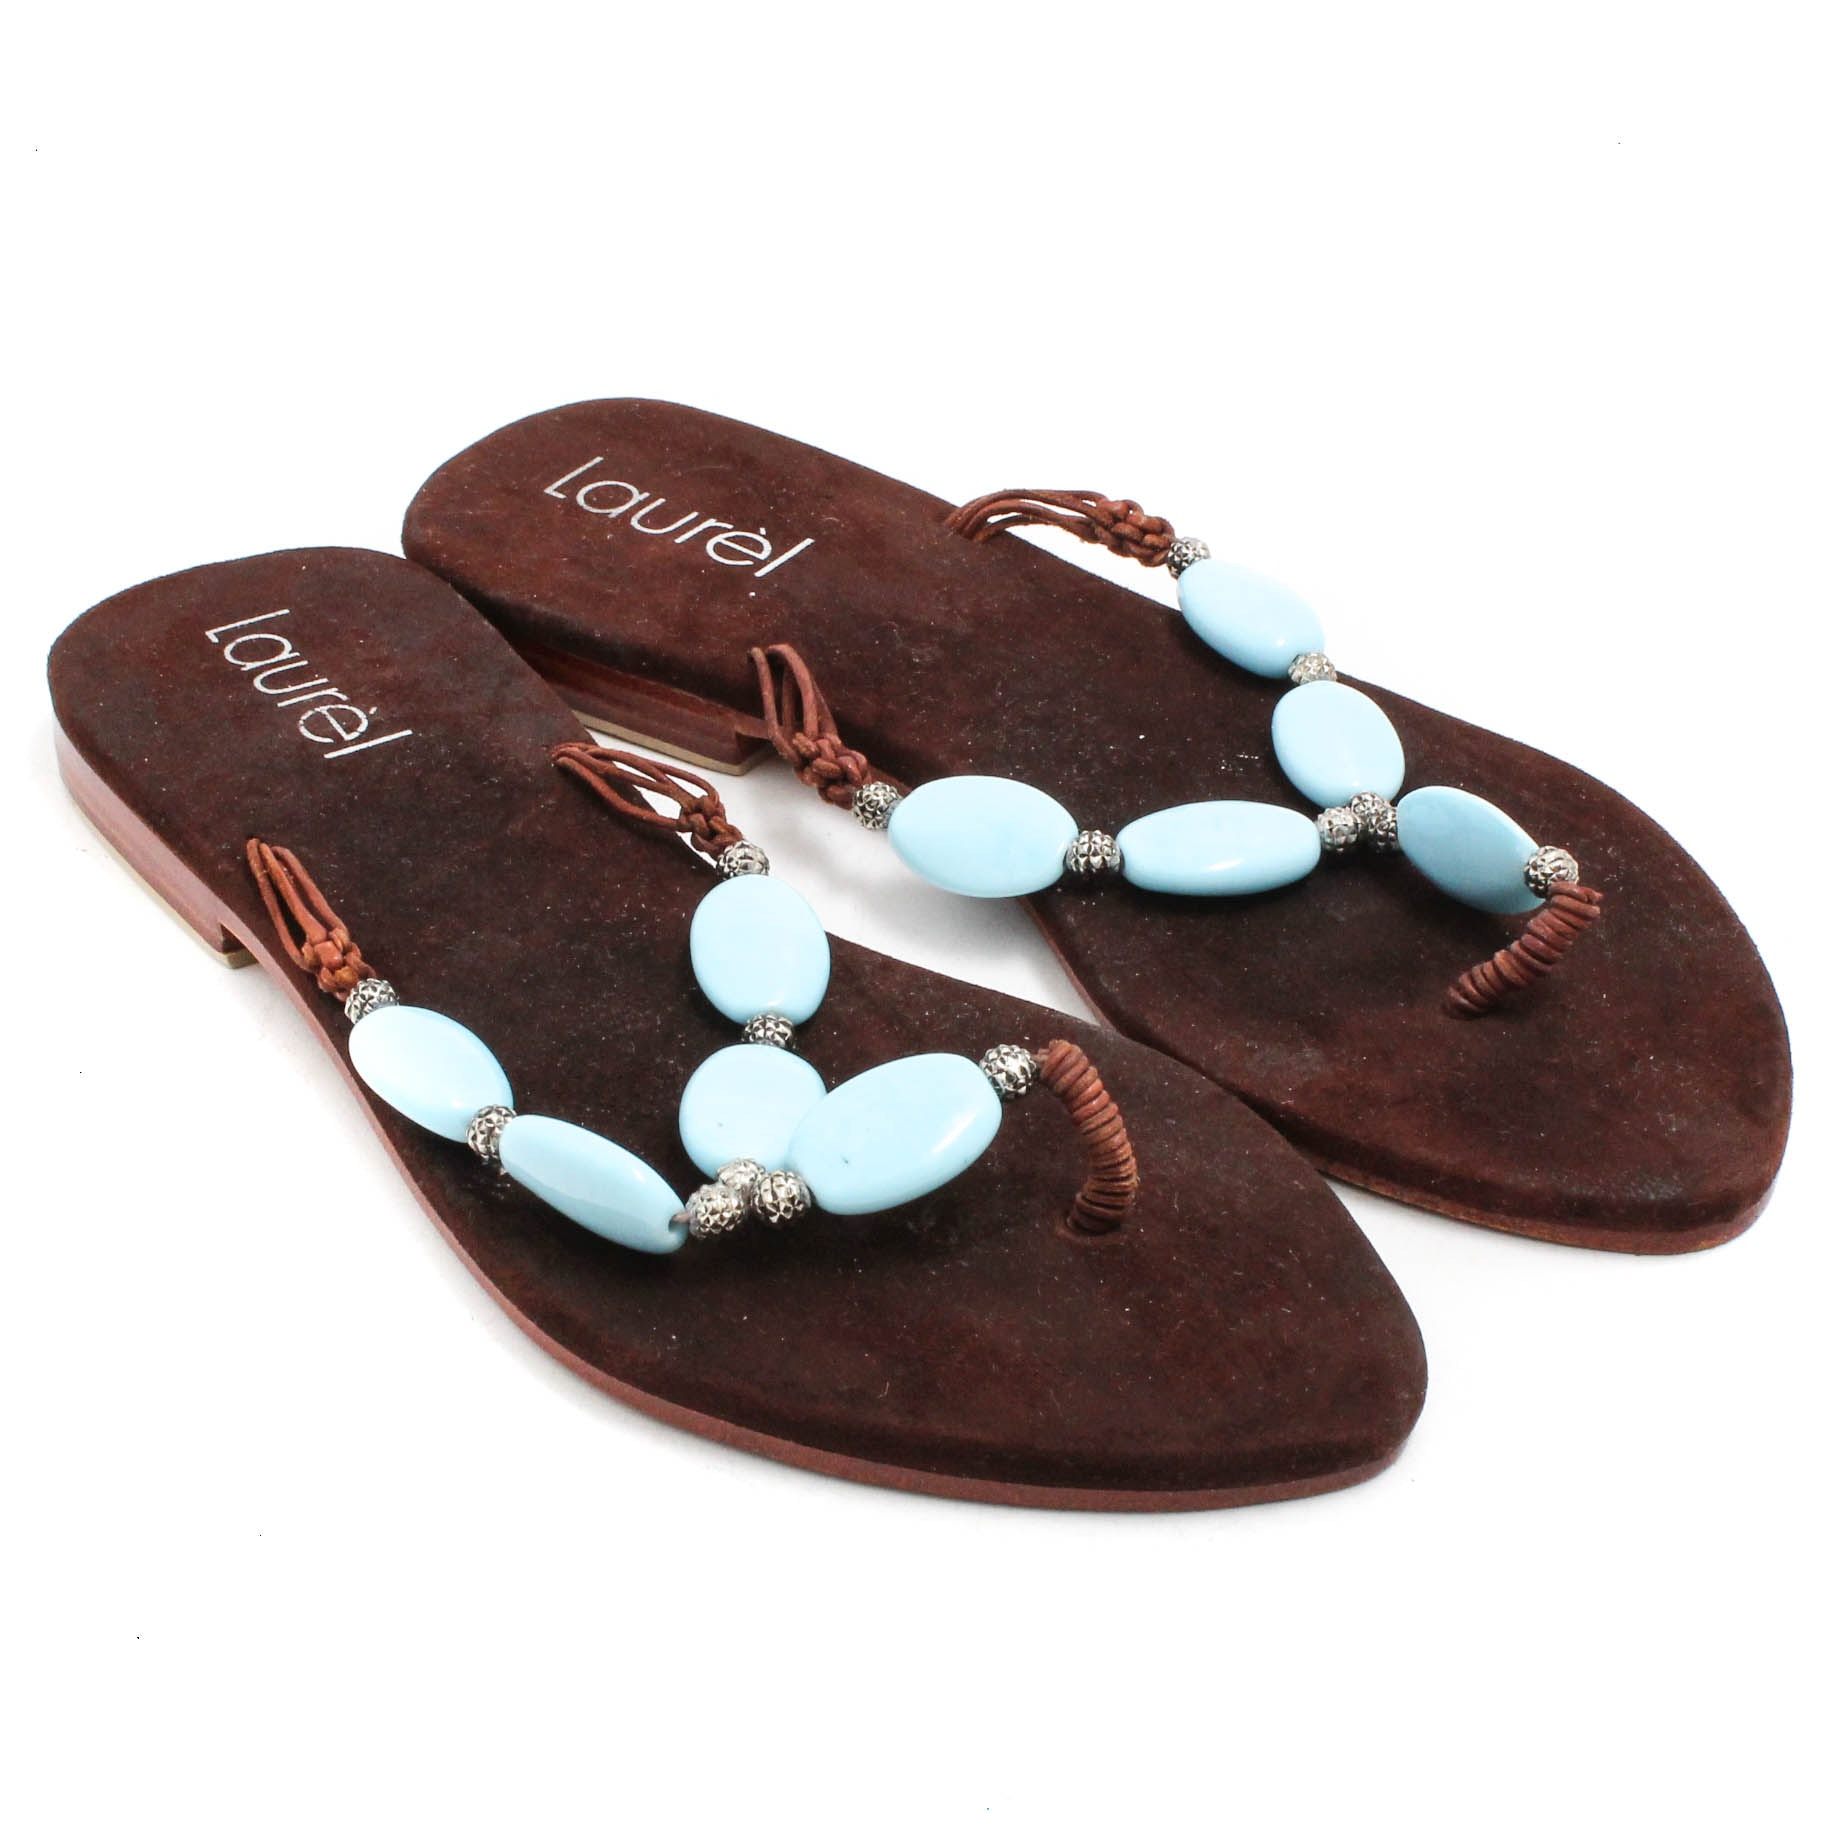 Laurel Leather Thong Sandals with Beads